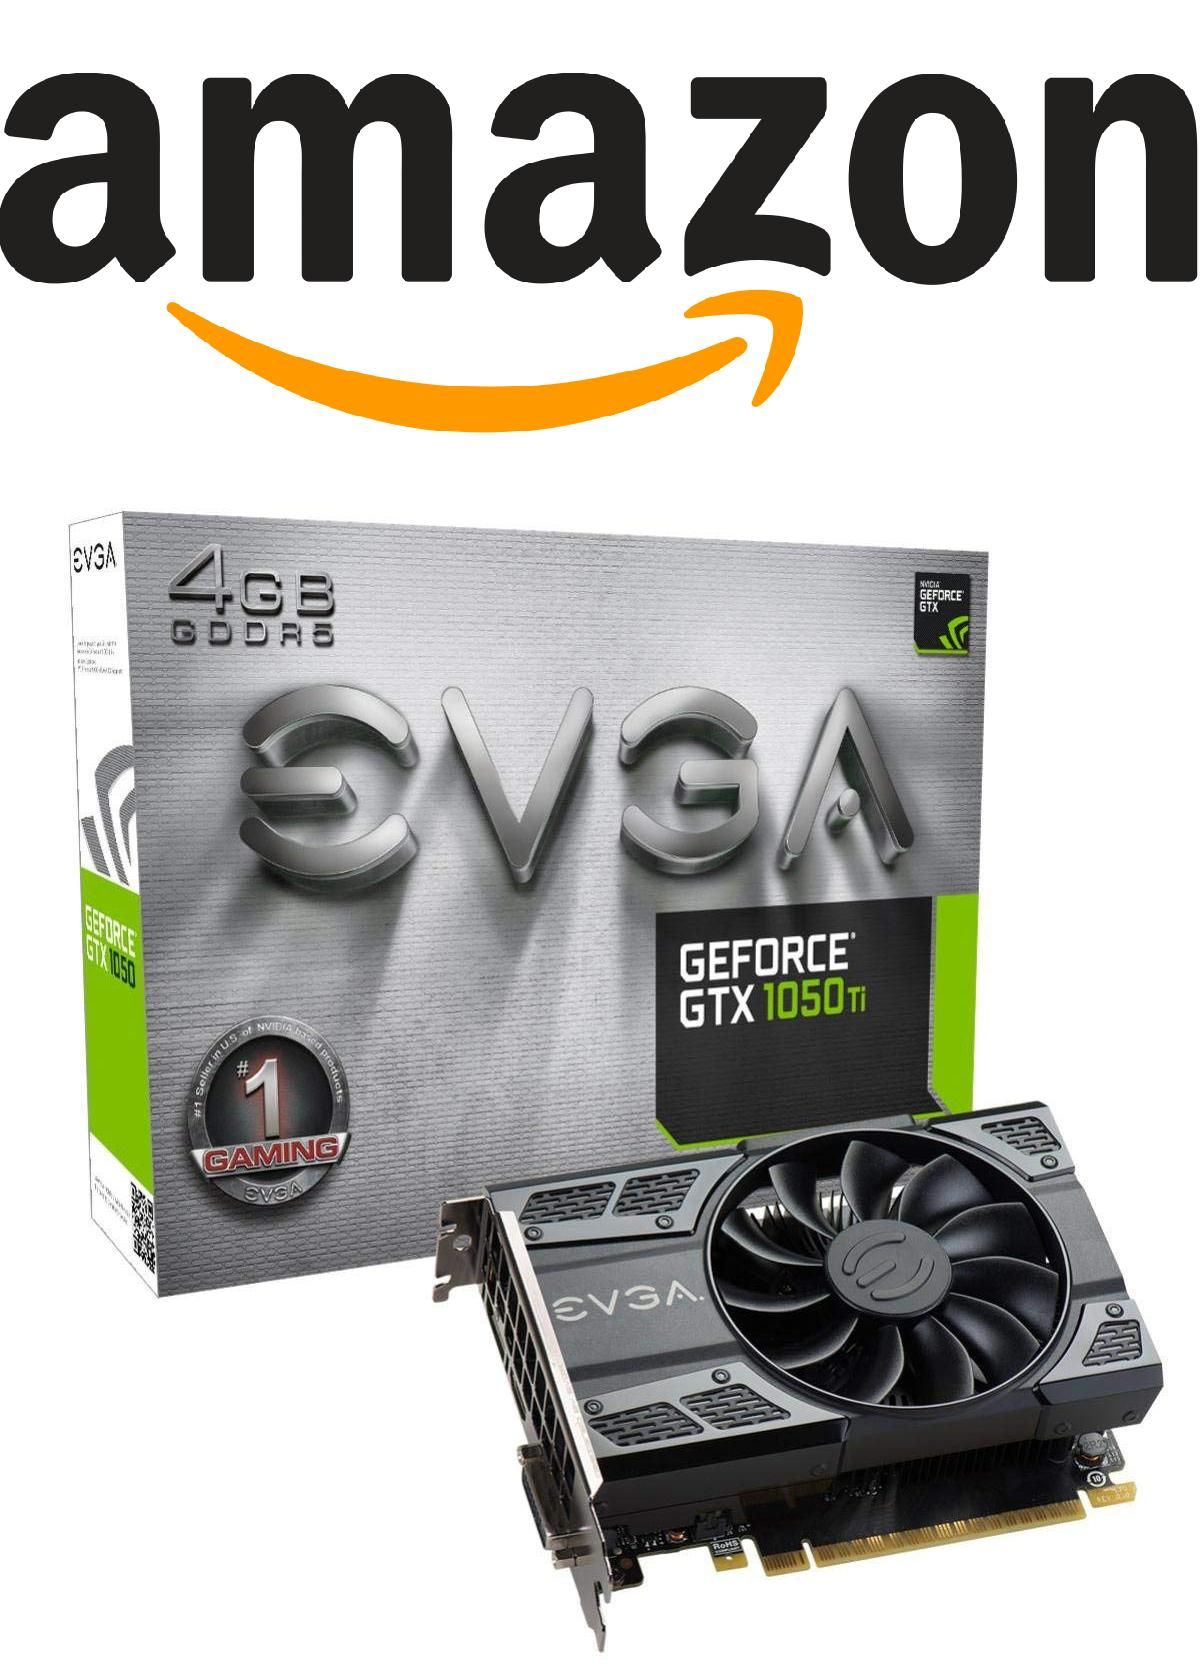 Evga Geforce Gtx 1050 Ti Gaming 4gb Gddr5 Dx12 Osd Support Pxoc Graphics Card 04g P4 6251 Kr Graphic Card Electronic Components Games